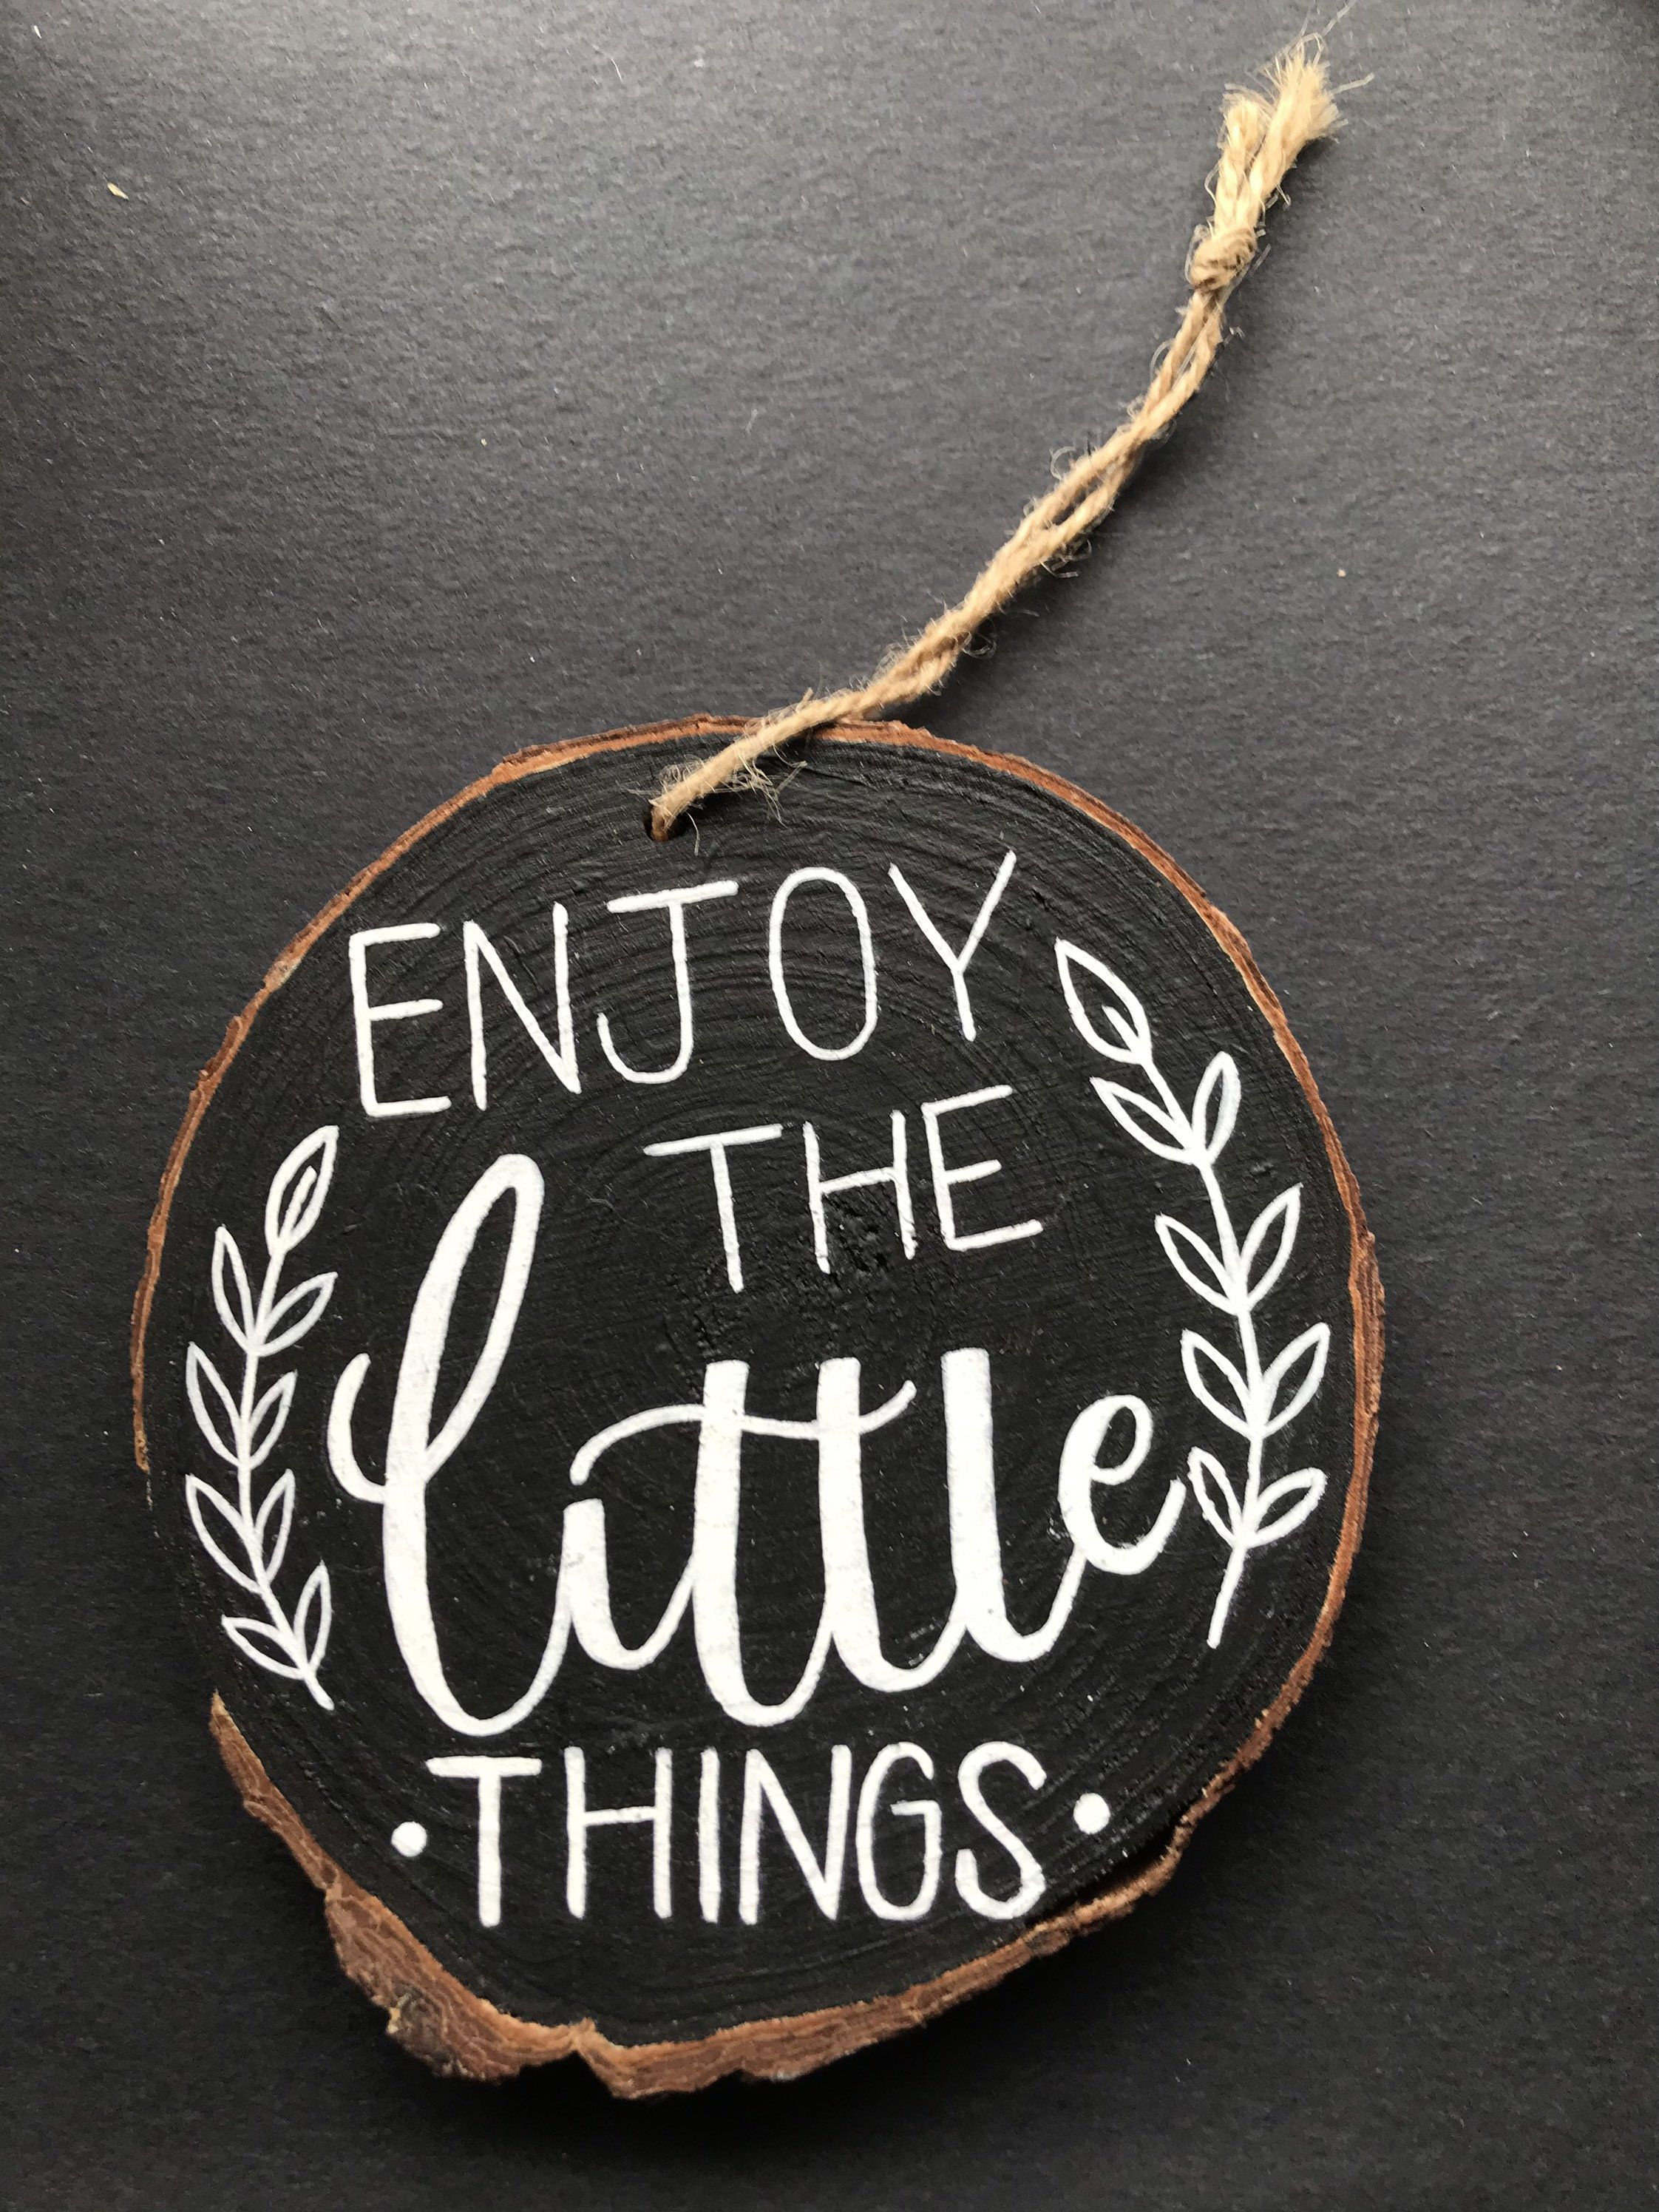 Enjoy The Little Things - Wood Slice Hand Lettered Quote